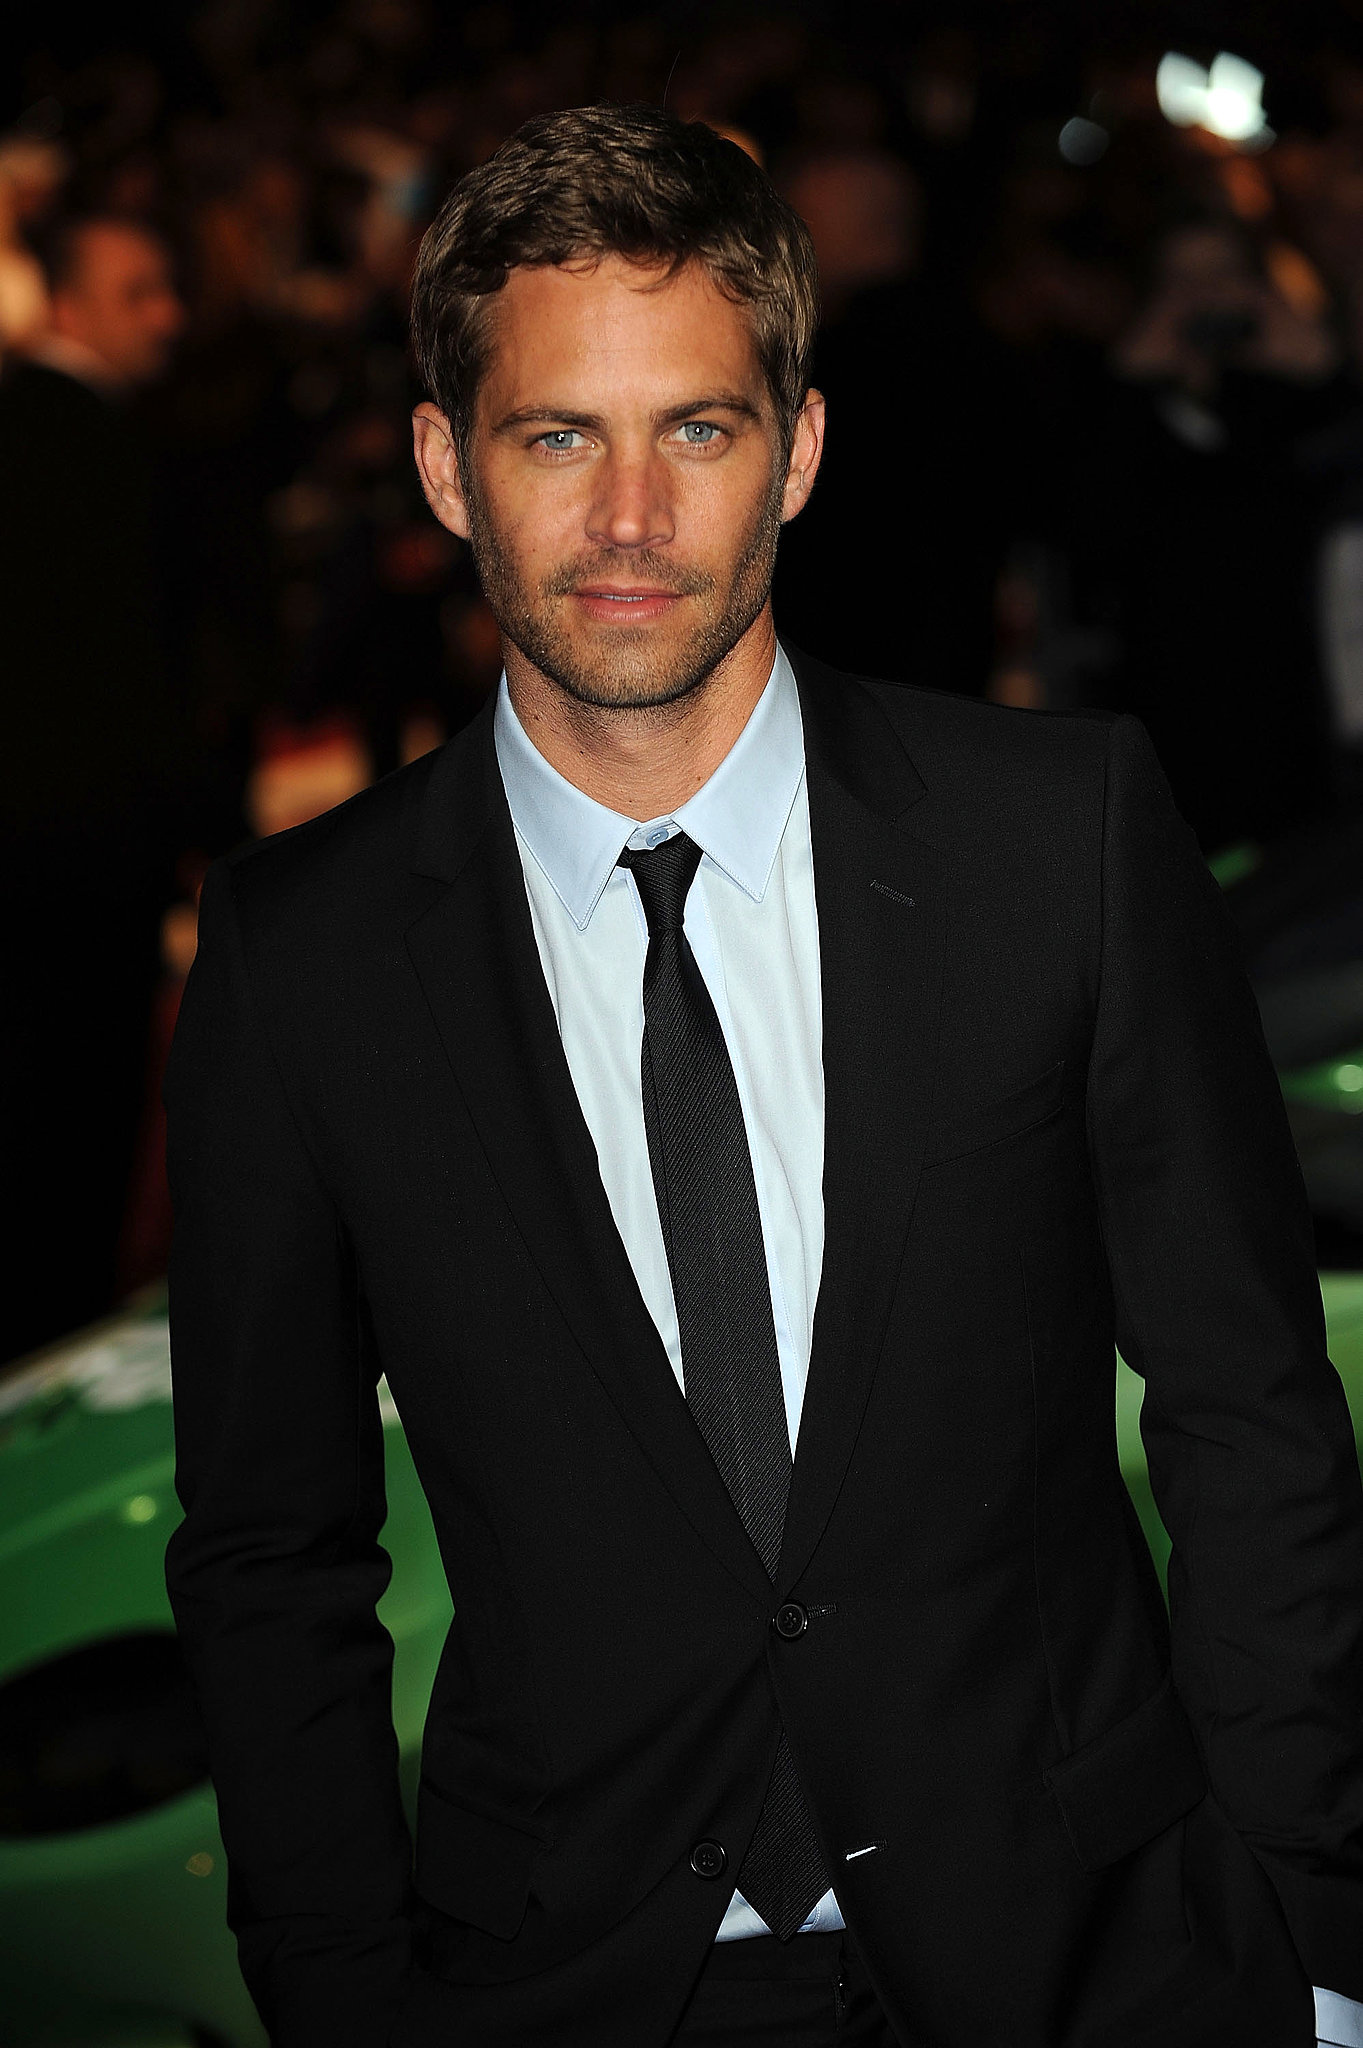 Gallery For gt Paul Walker Suit In Fast And Furious